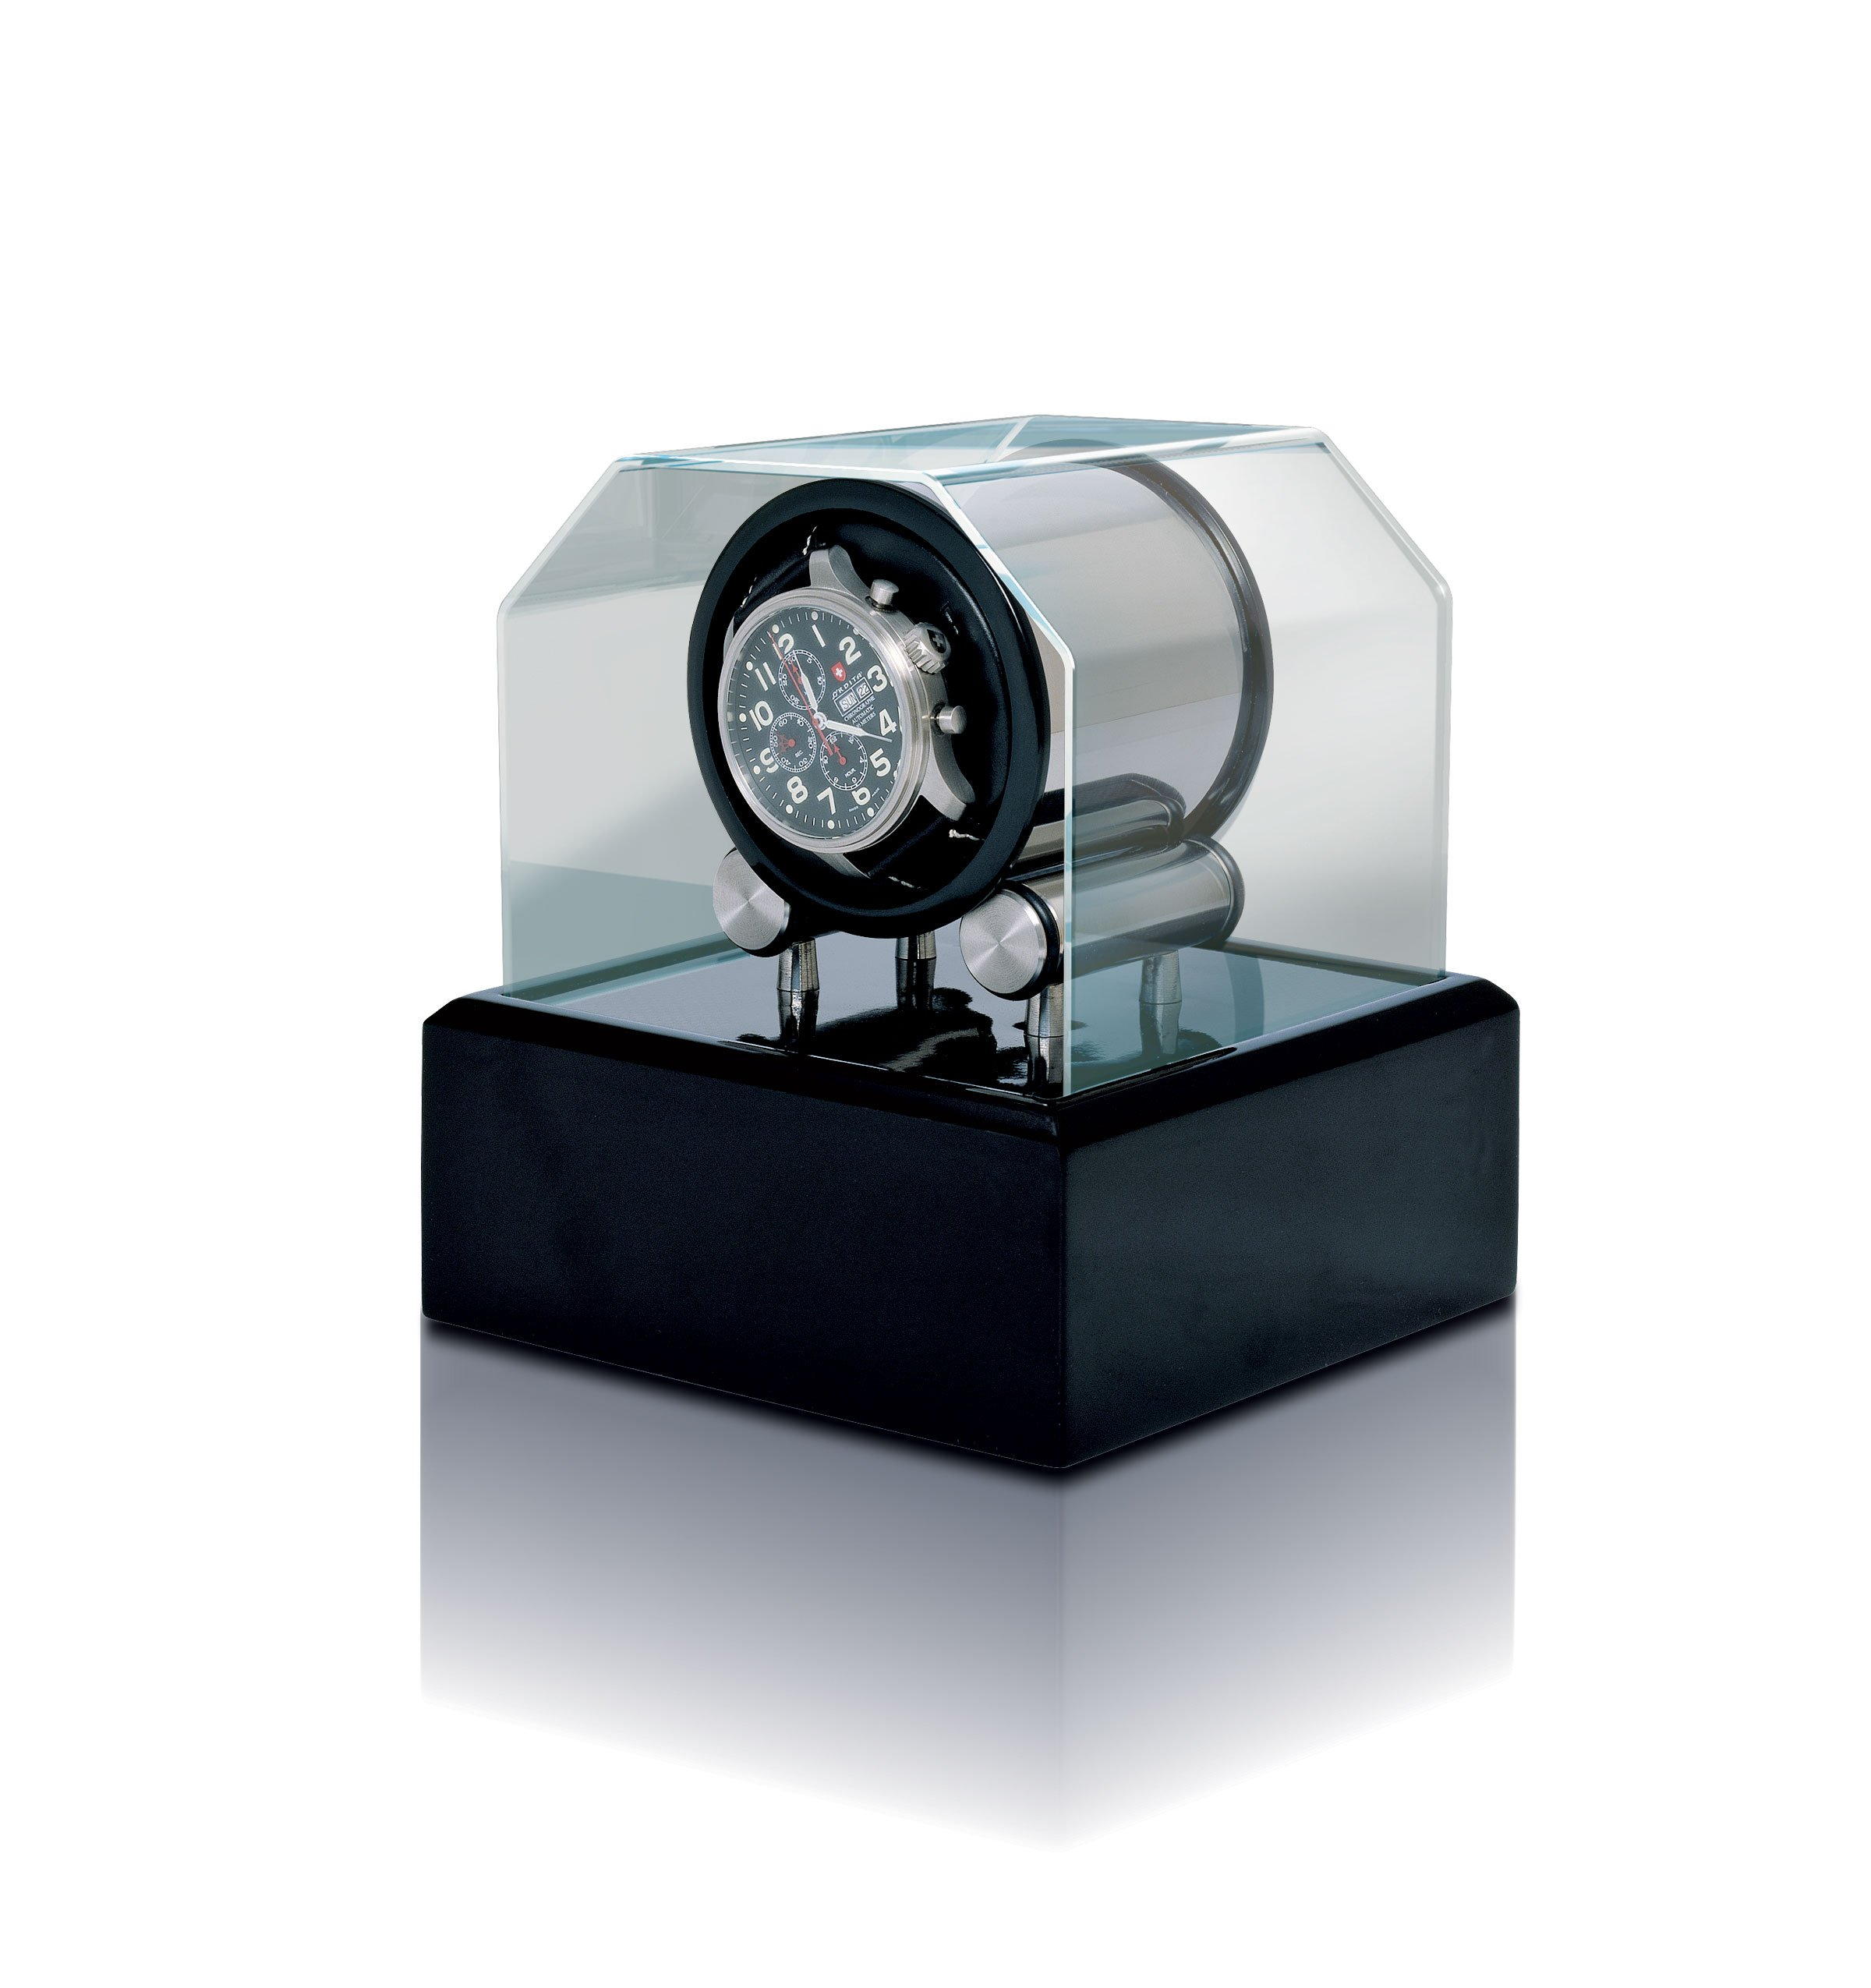 Futura 1 Watch Winder with Black Lacquer Base by Orbita